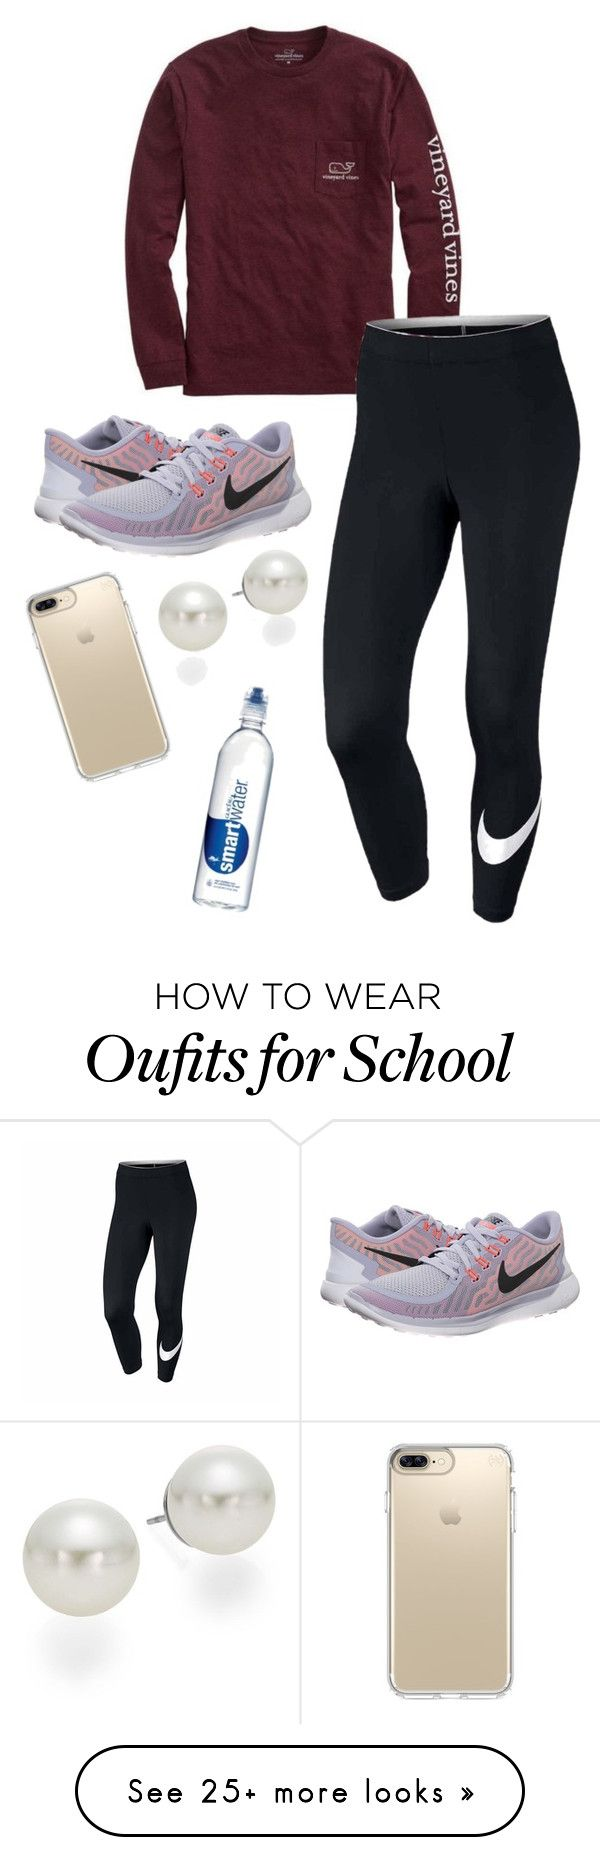 """Middle School"" by rkidd1716 on Polyvore featuring Vineyard Vines, NIKE, AK Anne Klein and Speck"